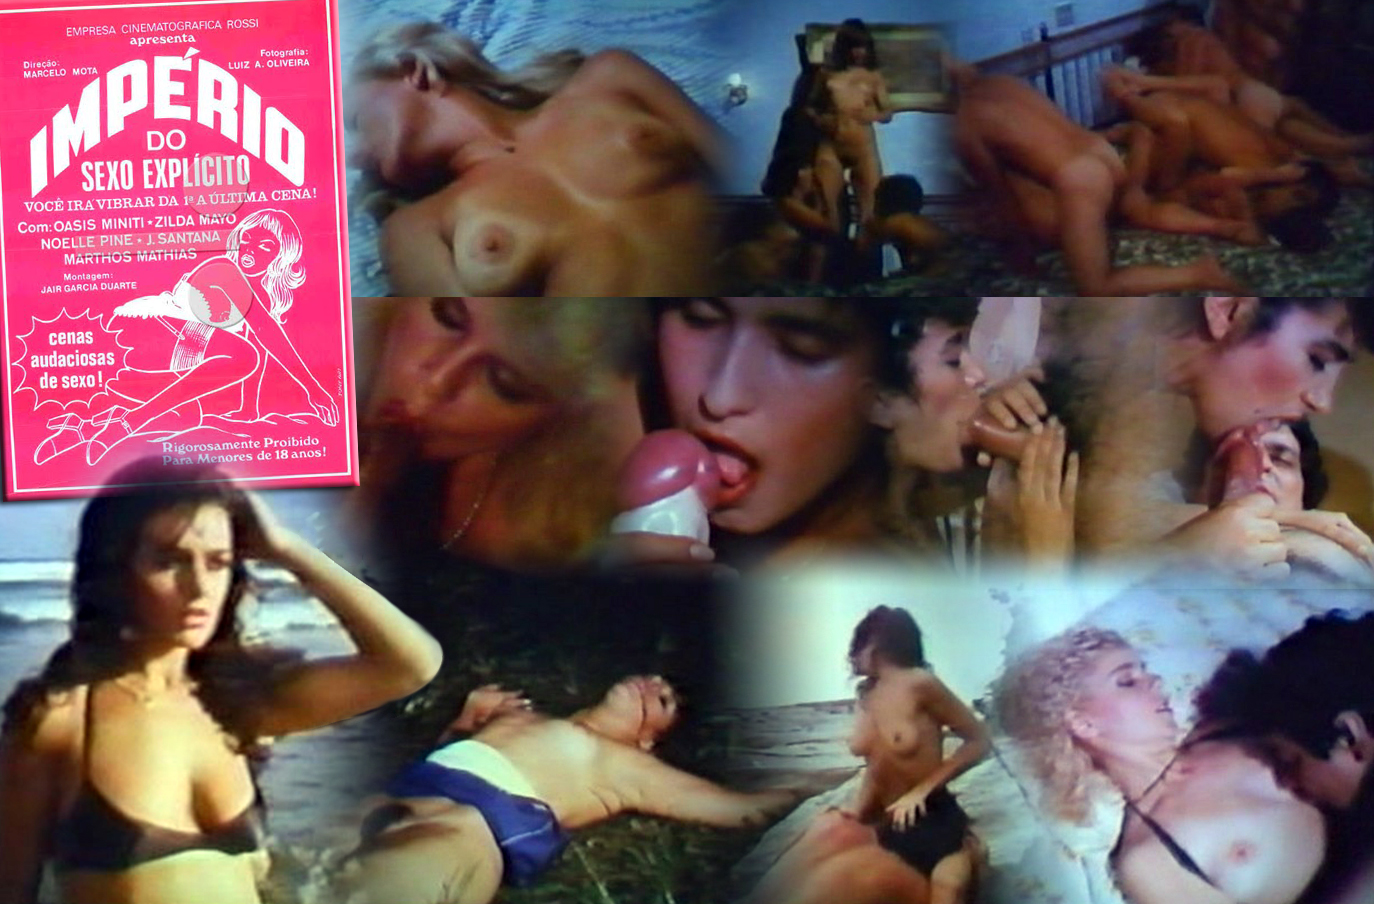 O Imperio do Sexo Explicito (1985)